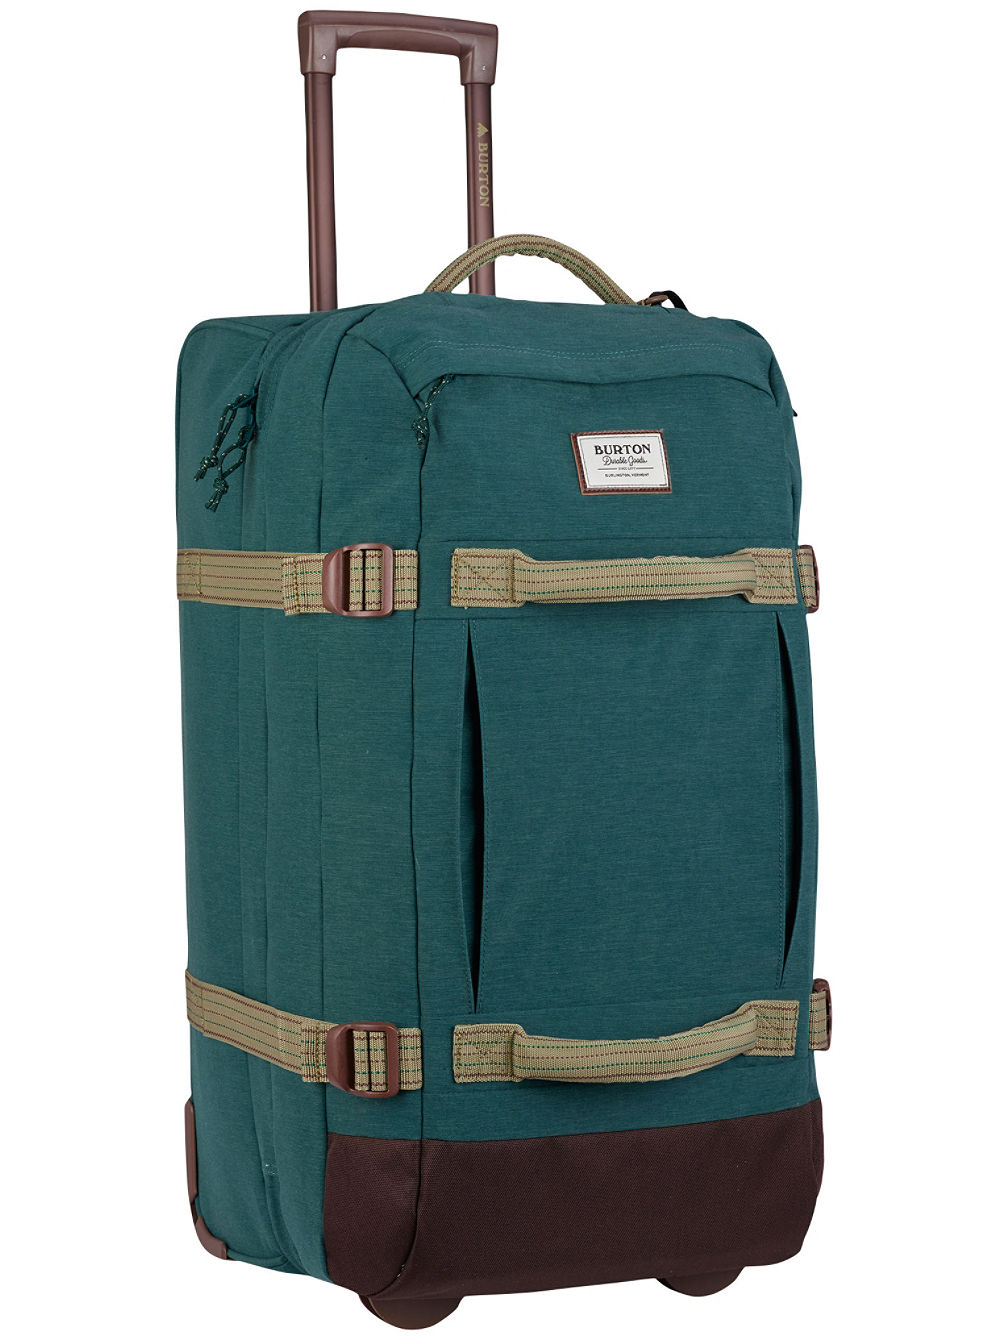 Convoy Roller Travelbag